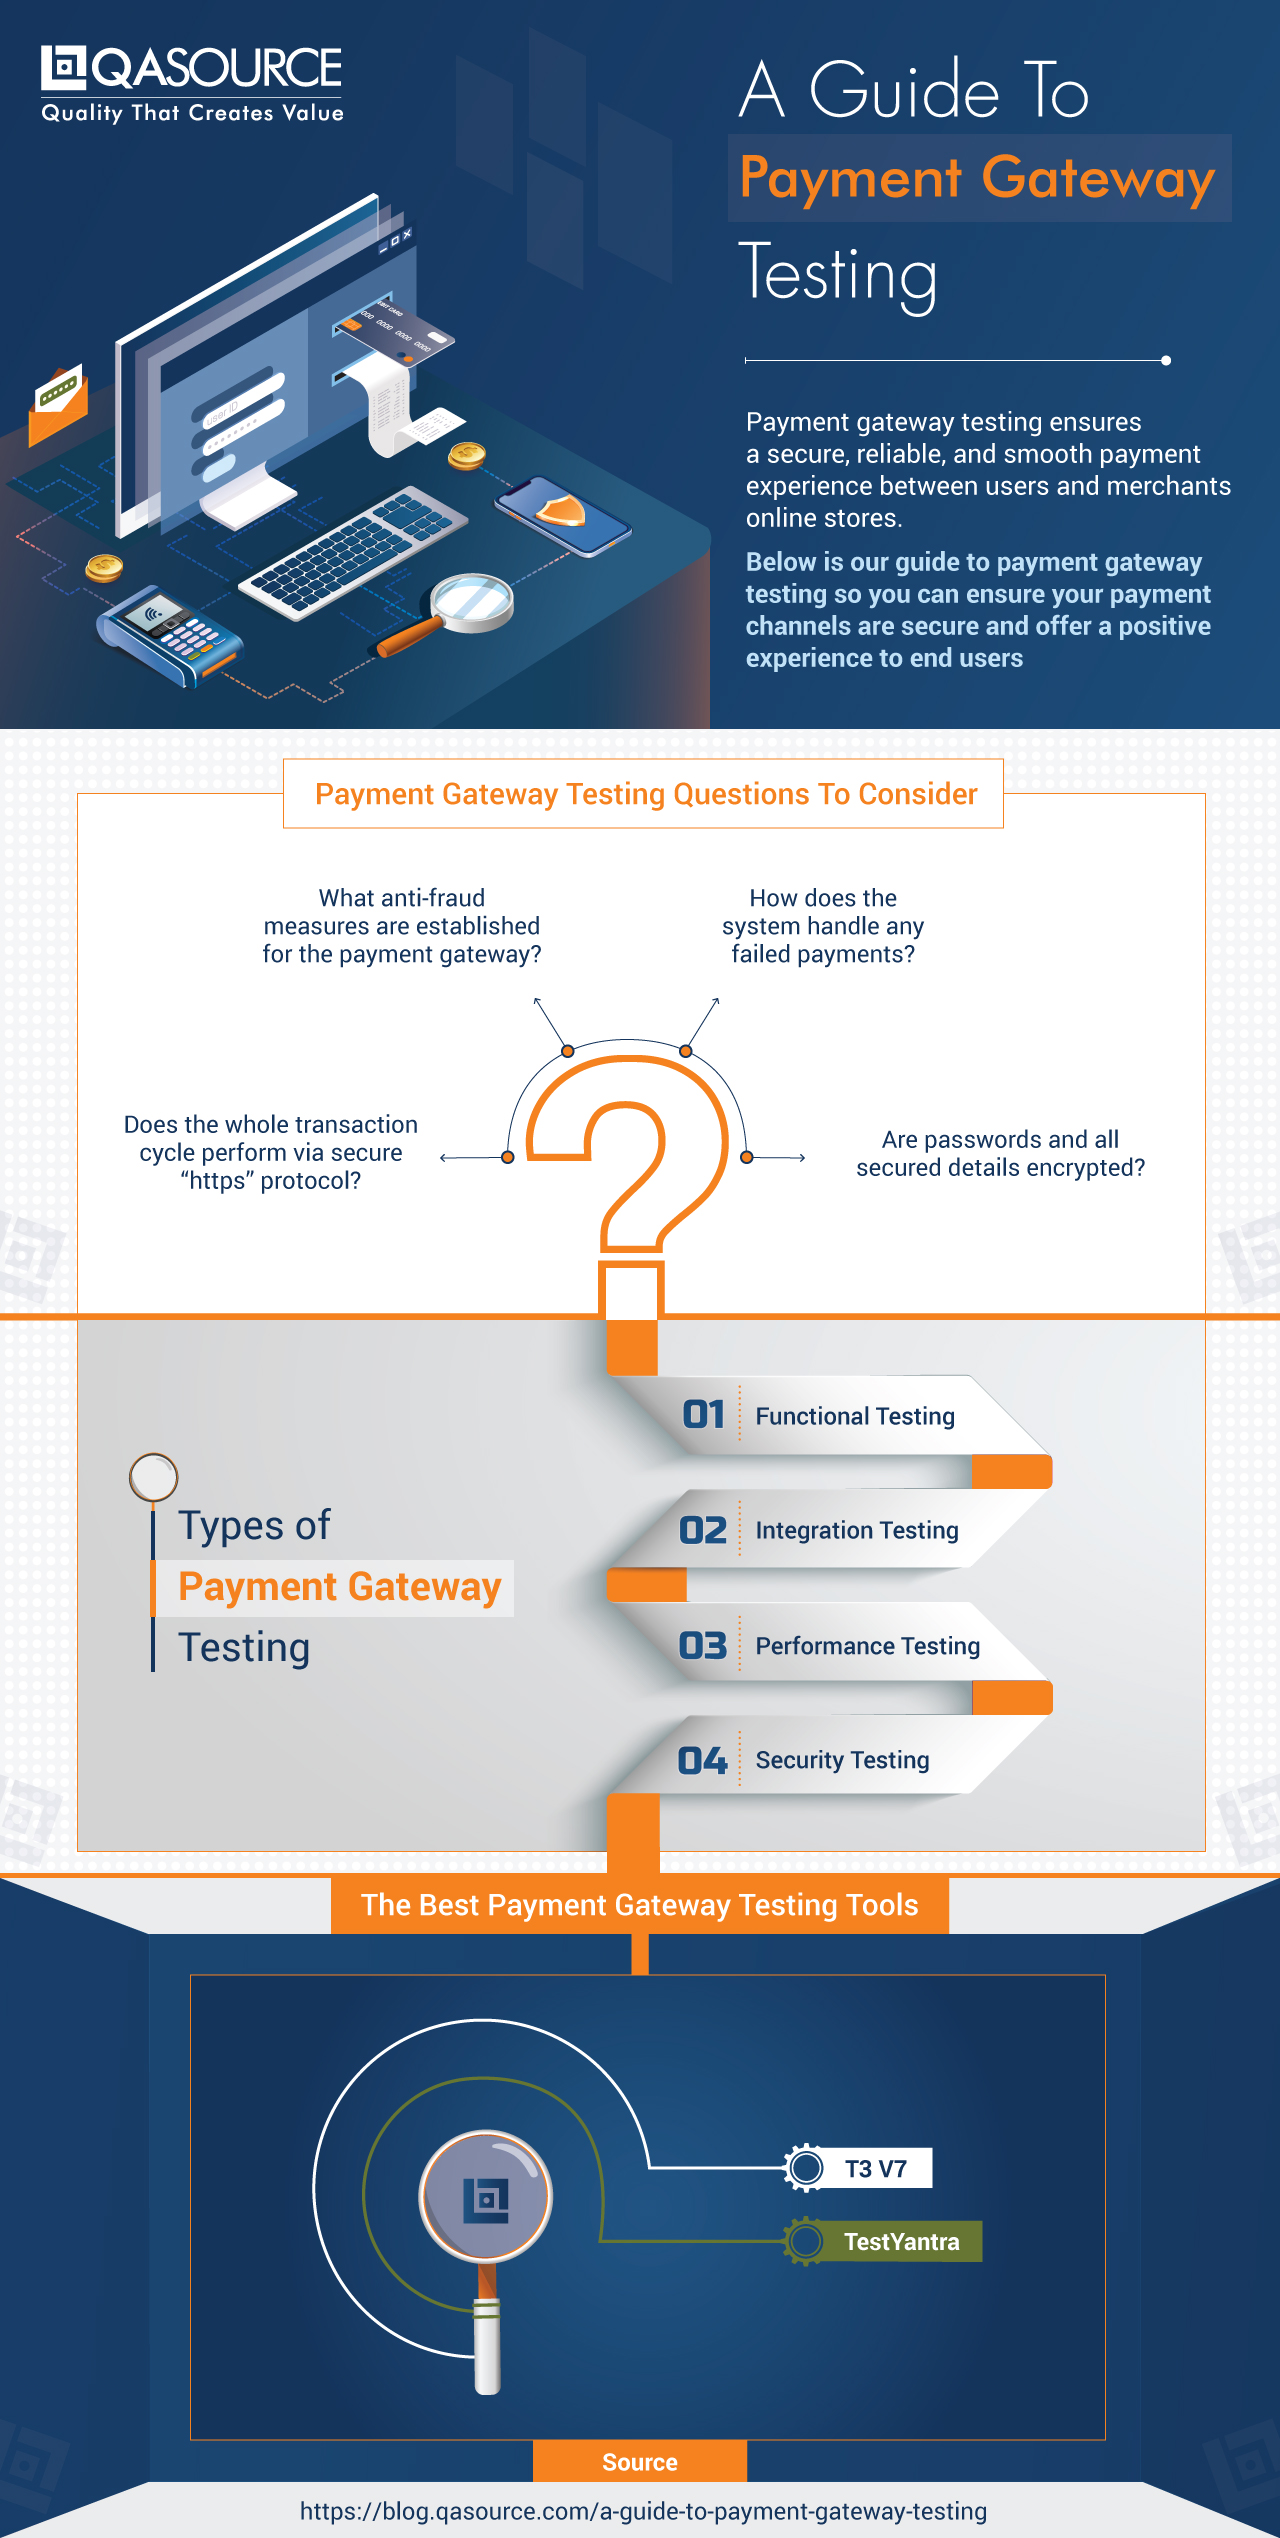 A Guide to Payment Gateway Testing